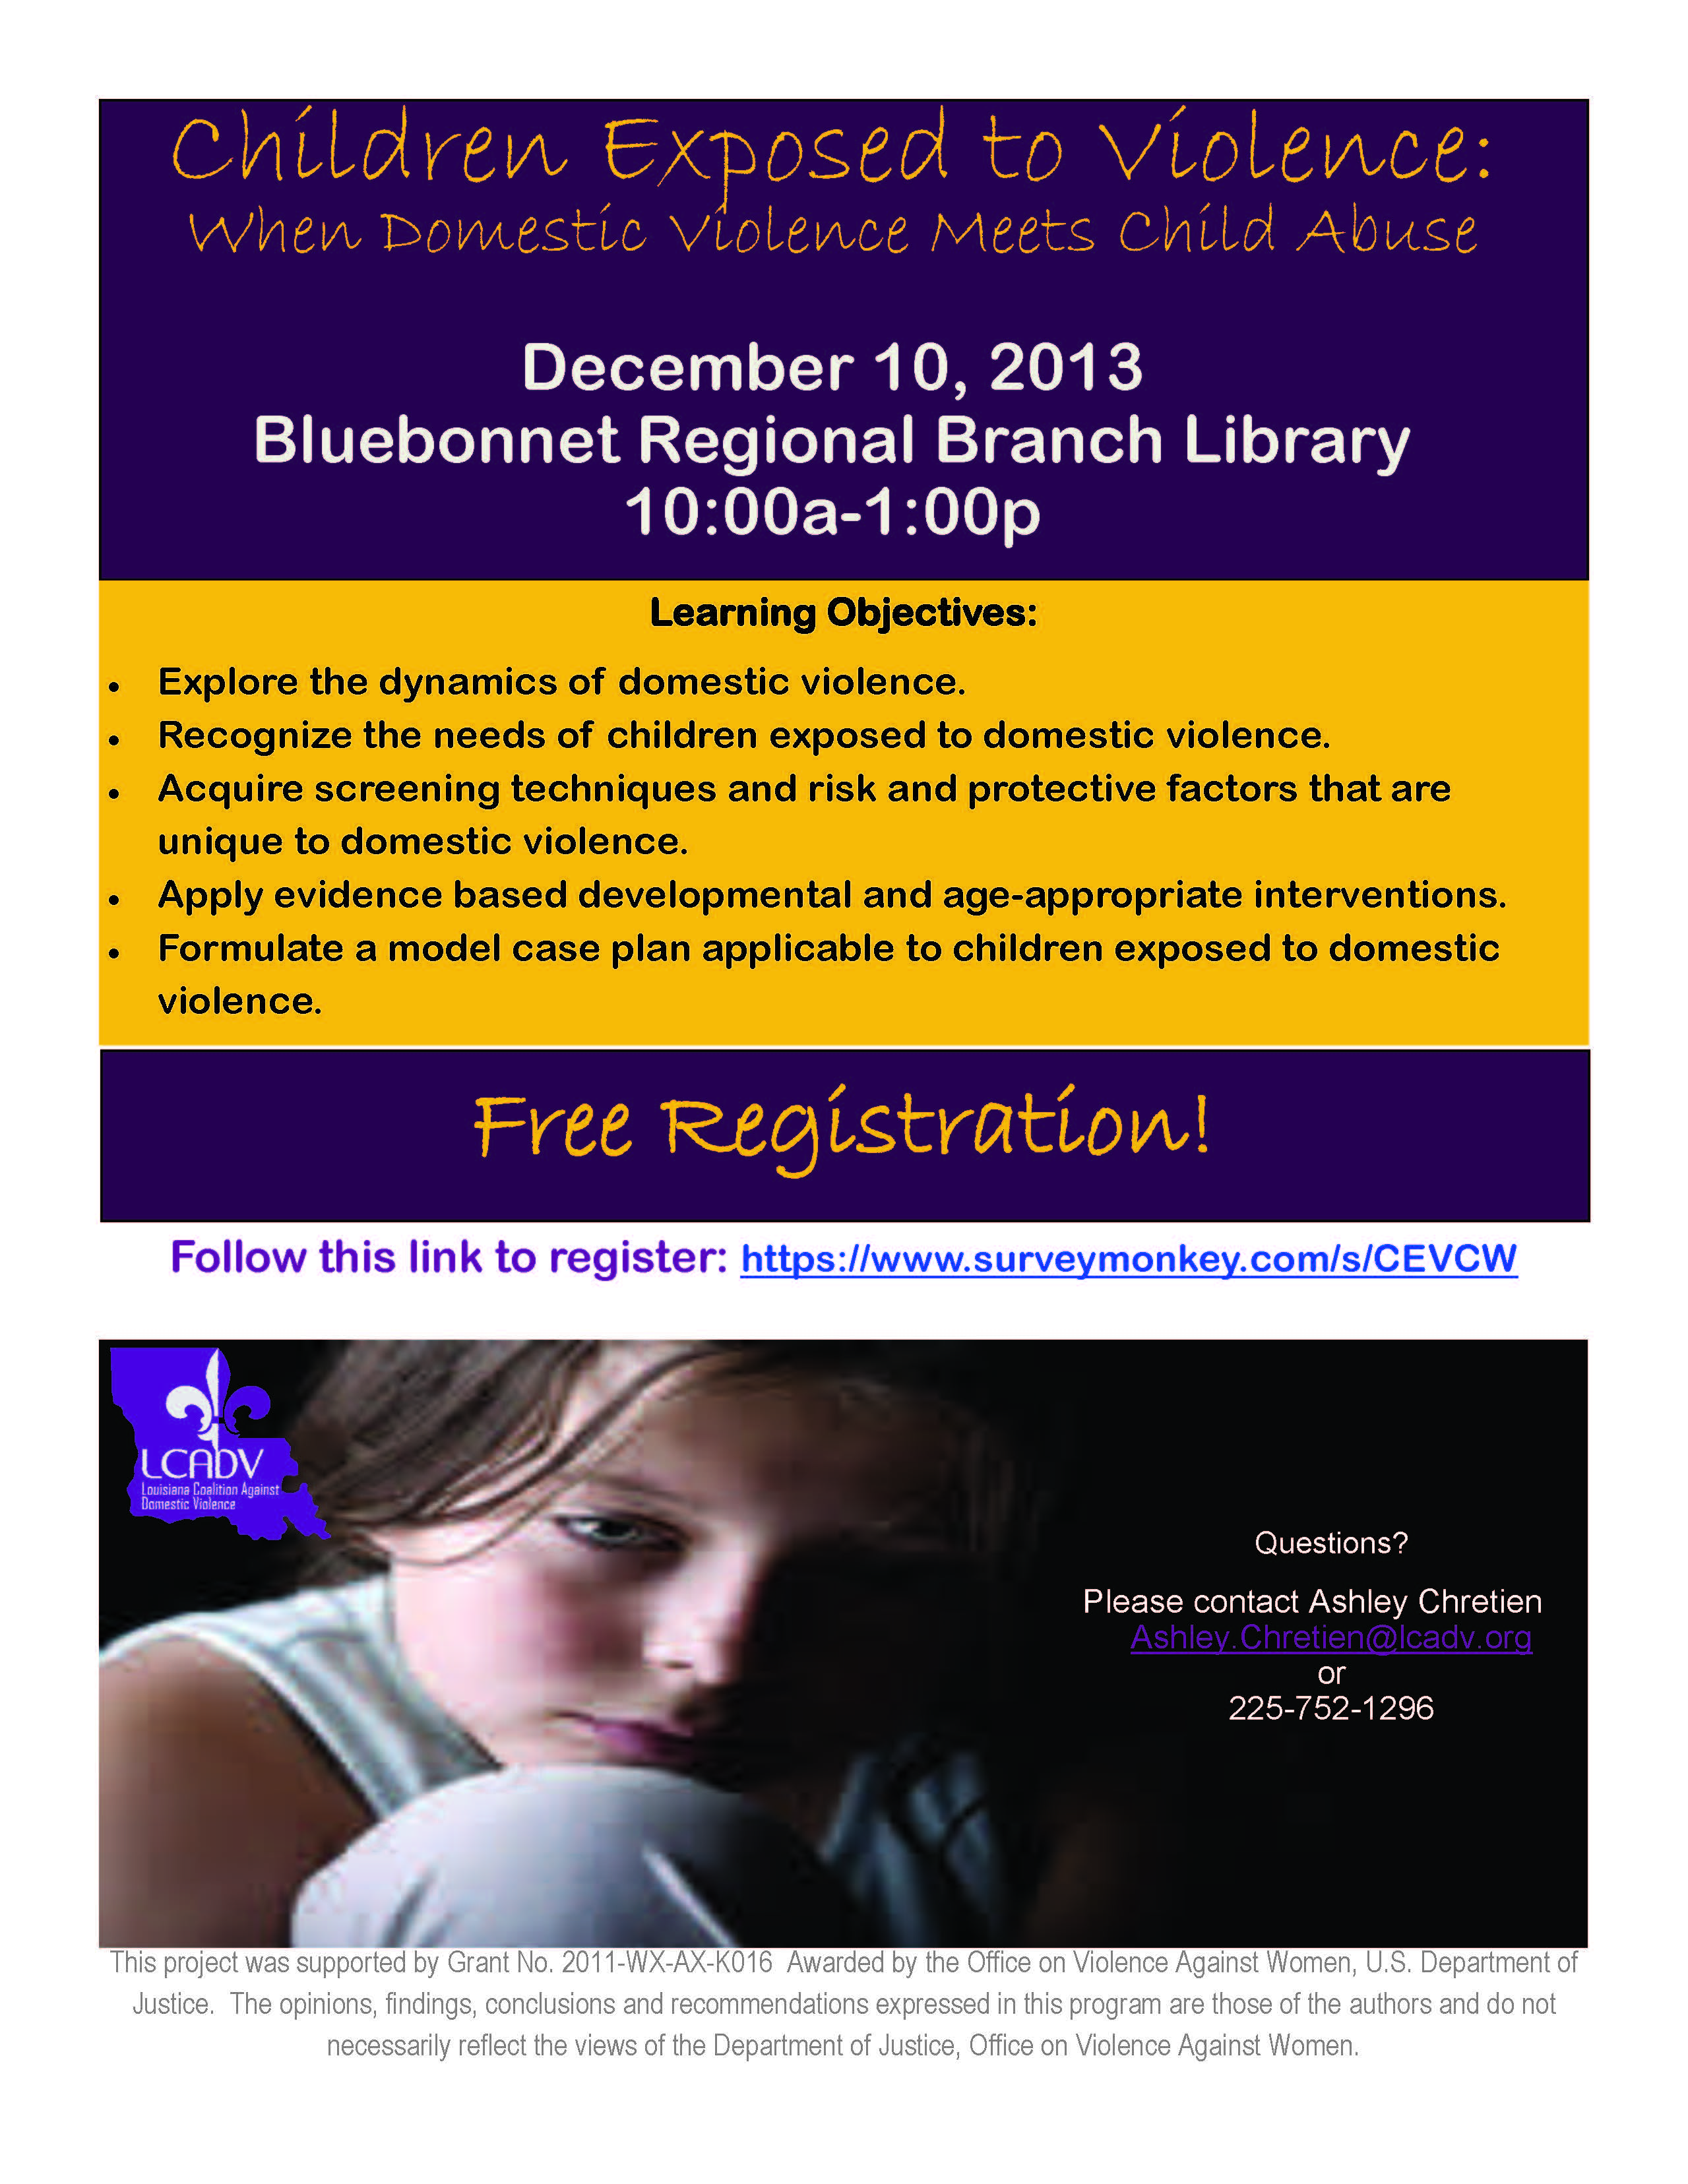 Children Exposed to Violence: When Domestic Violence Meets Child Abuse @ Bluebonnet Branch Library | Baton Rouge | Louisiana | United States